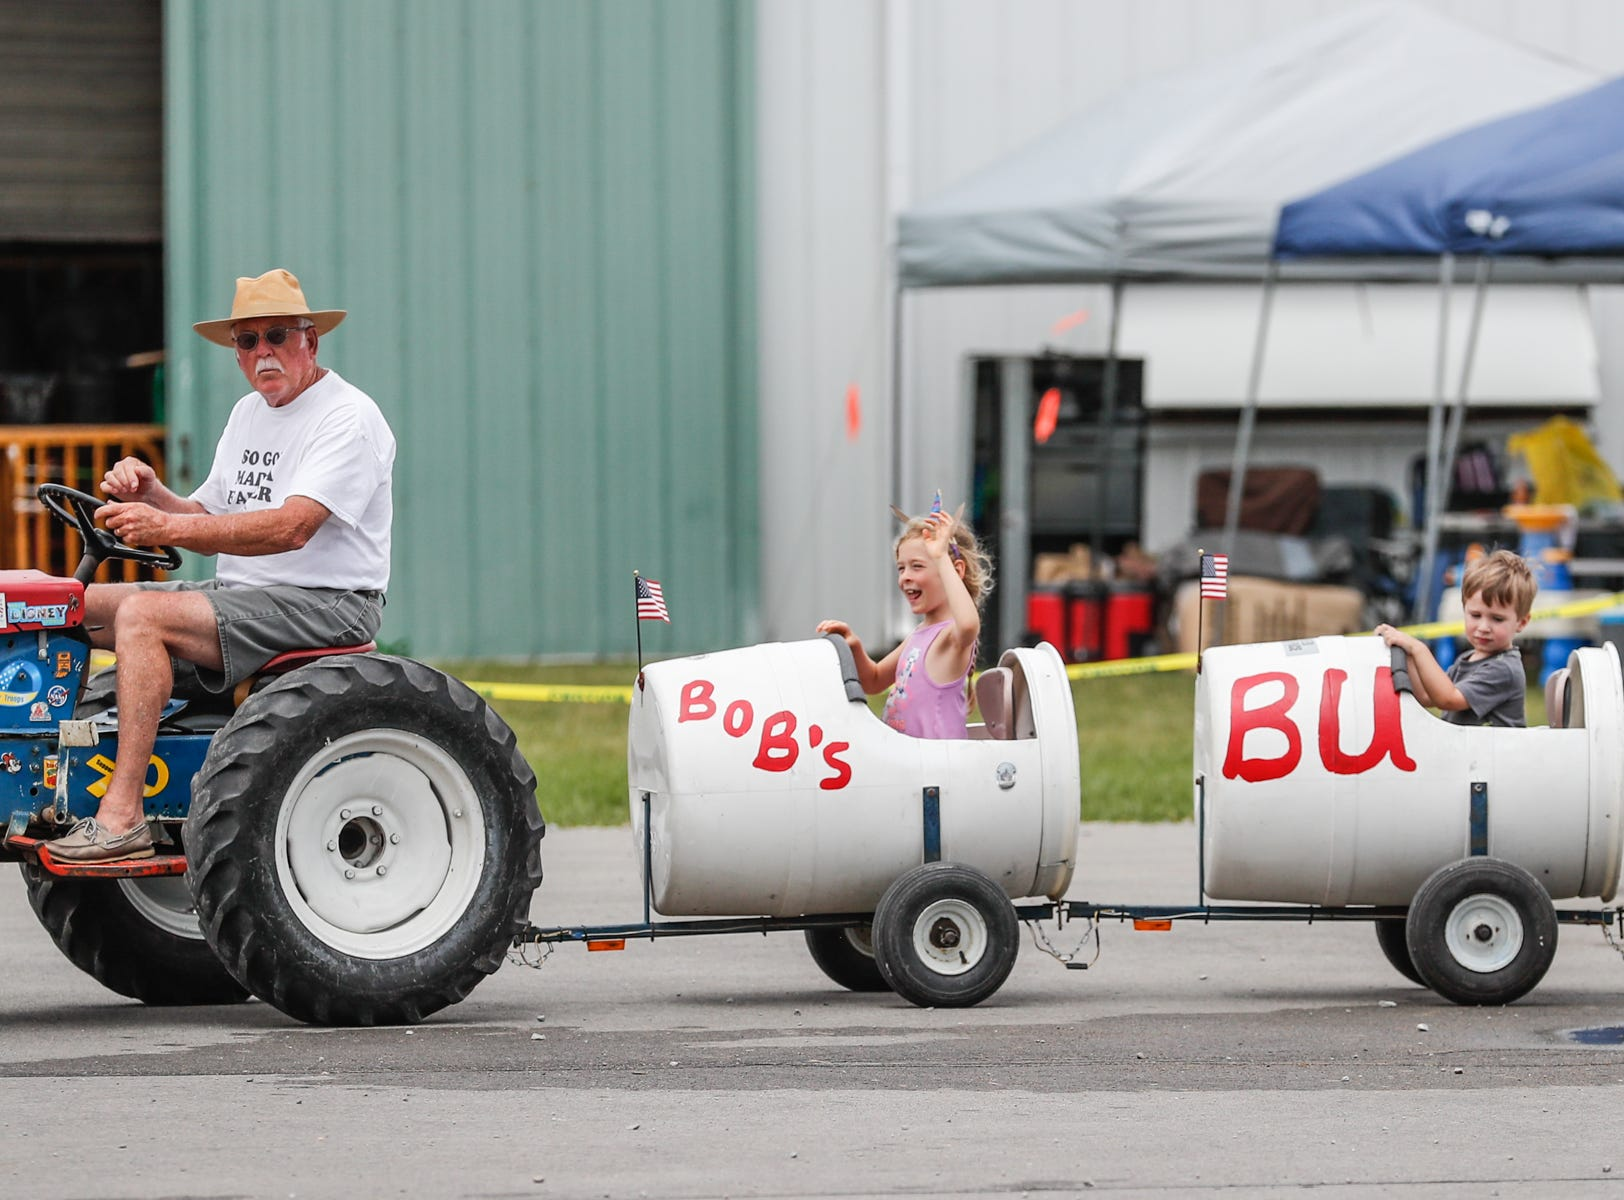 Kids take a spin on Bobs Bumpy Barrel Ride during the Hamilton County Fair, held at the Hamilton County 4-H Fairgrounds on Sunday, July 22, 2018.